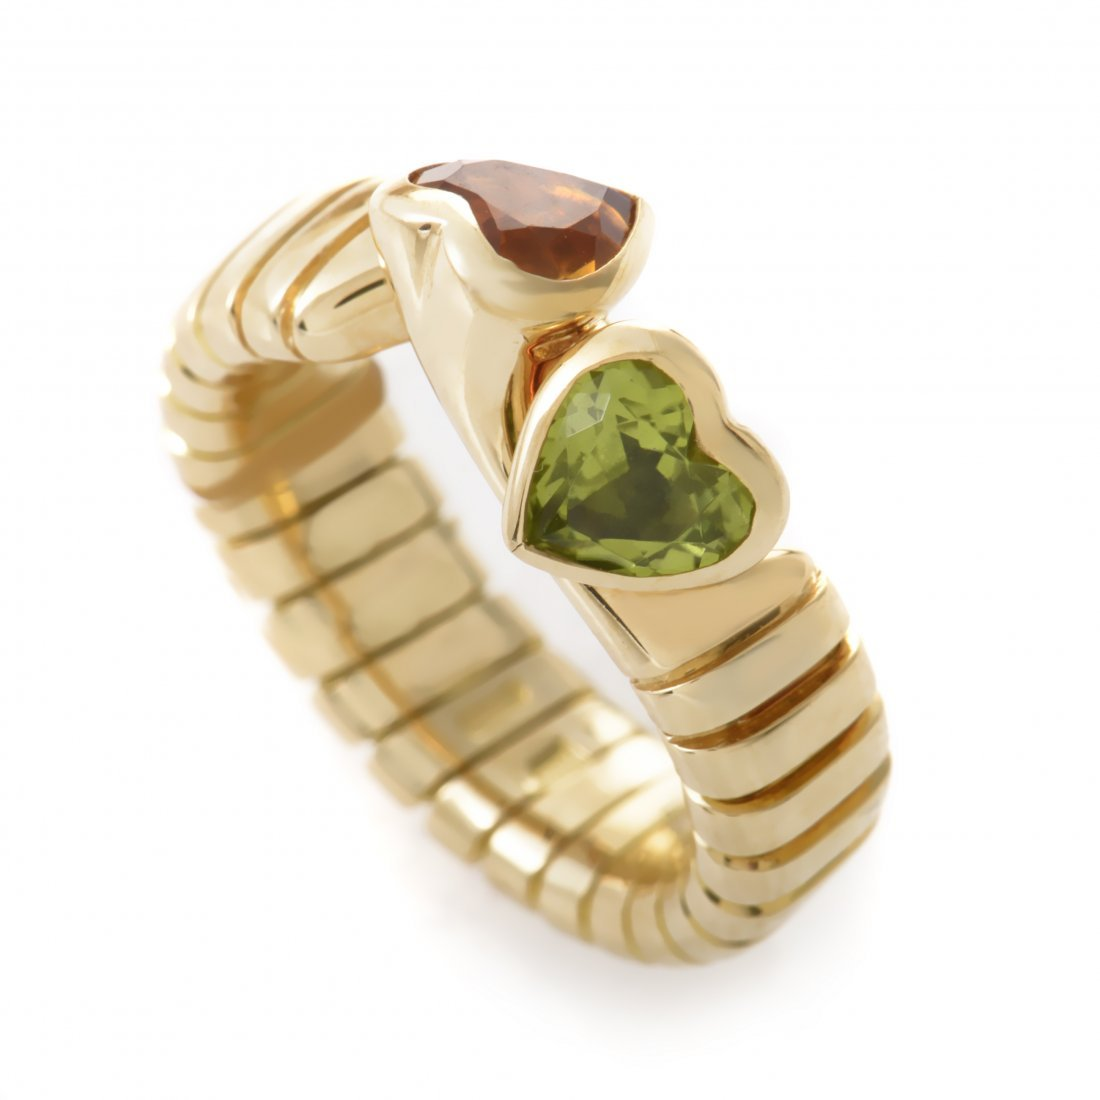 Bvlgari 18K Yellow Gold Double Heart Citrine & Peridot